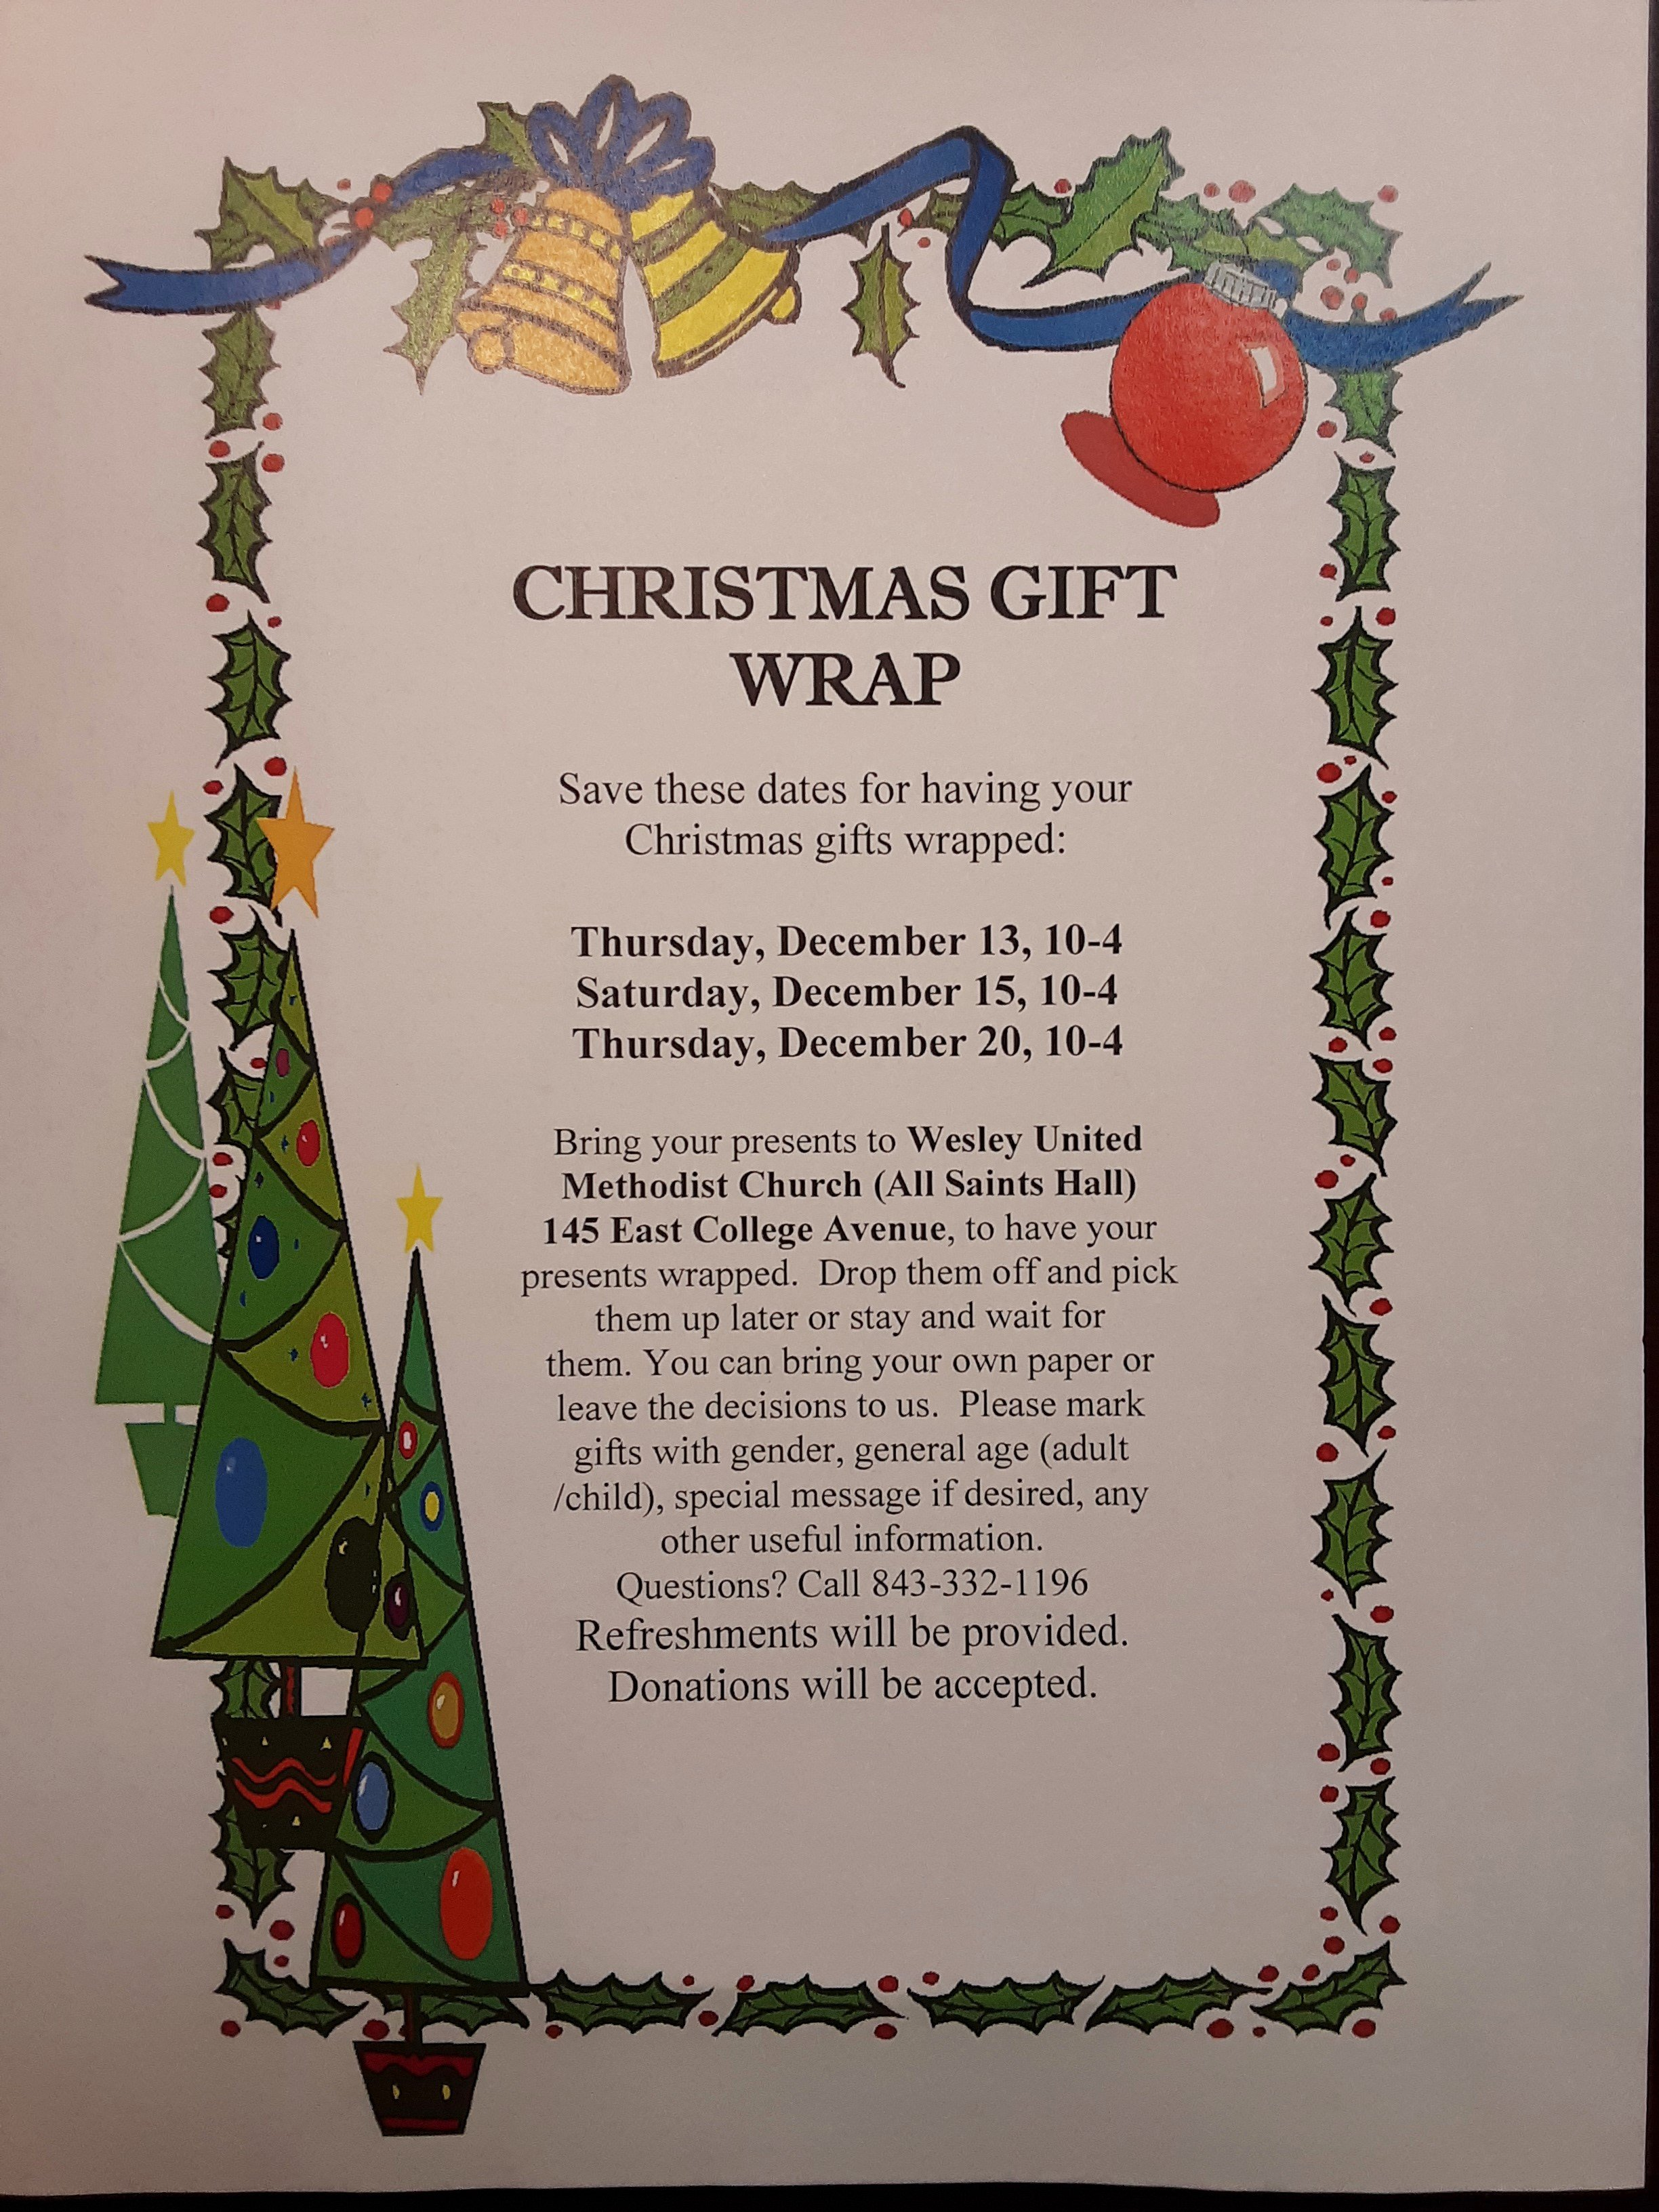 Bring your unwrapped presents to Wesley United Methodist Church on Dec. 13th, 15th, and 20th between 10am-4pm and our talented elves will wrap your presents ...